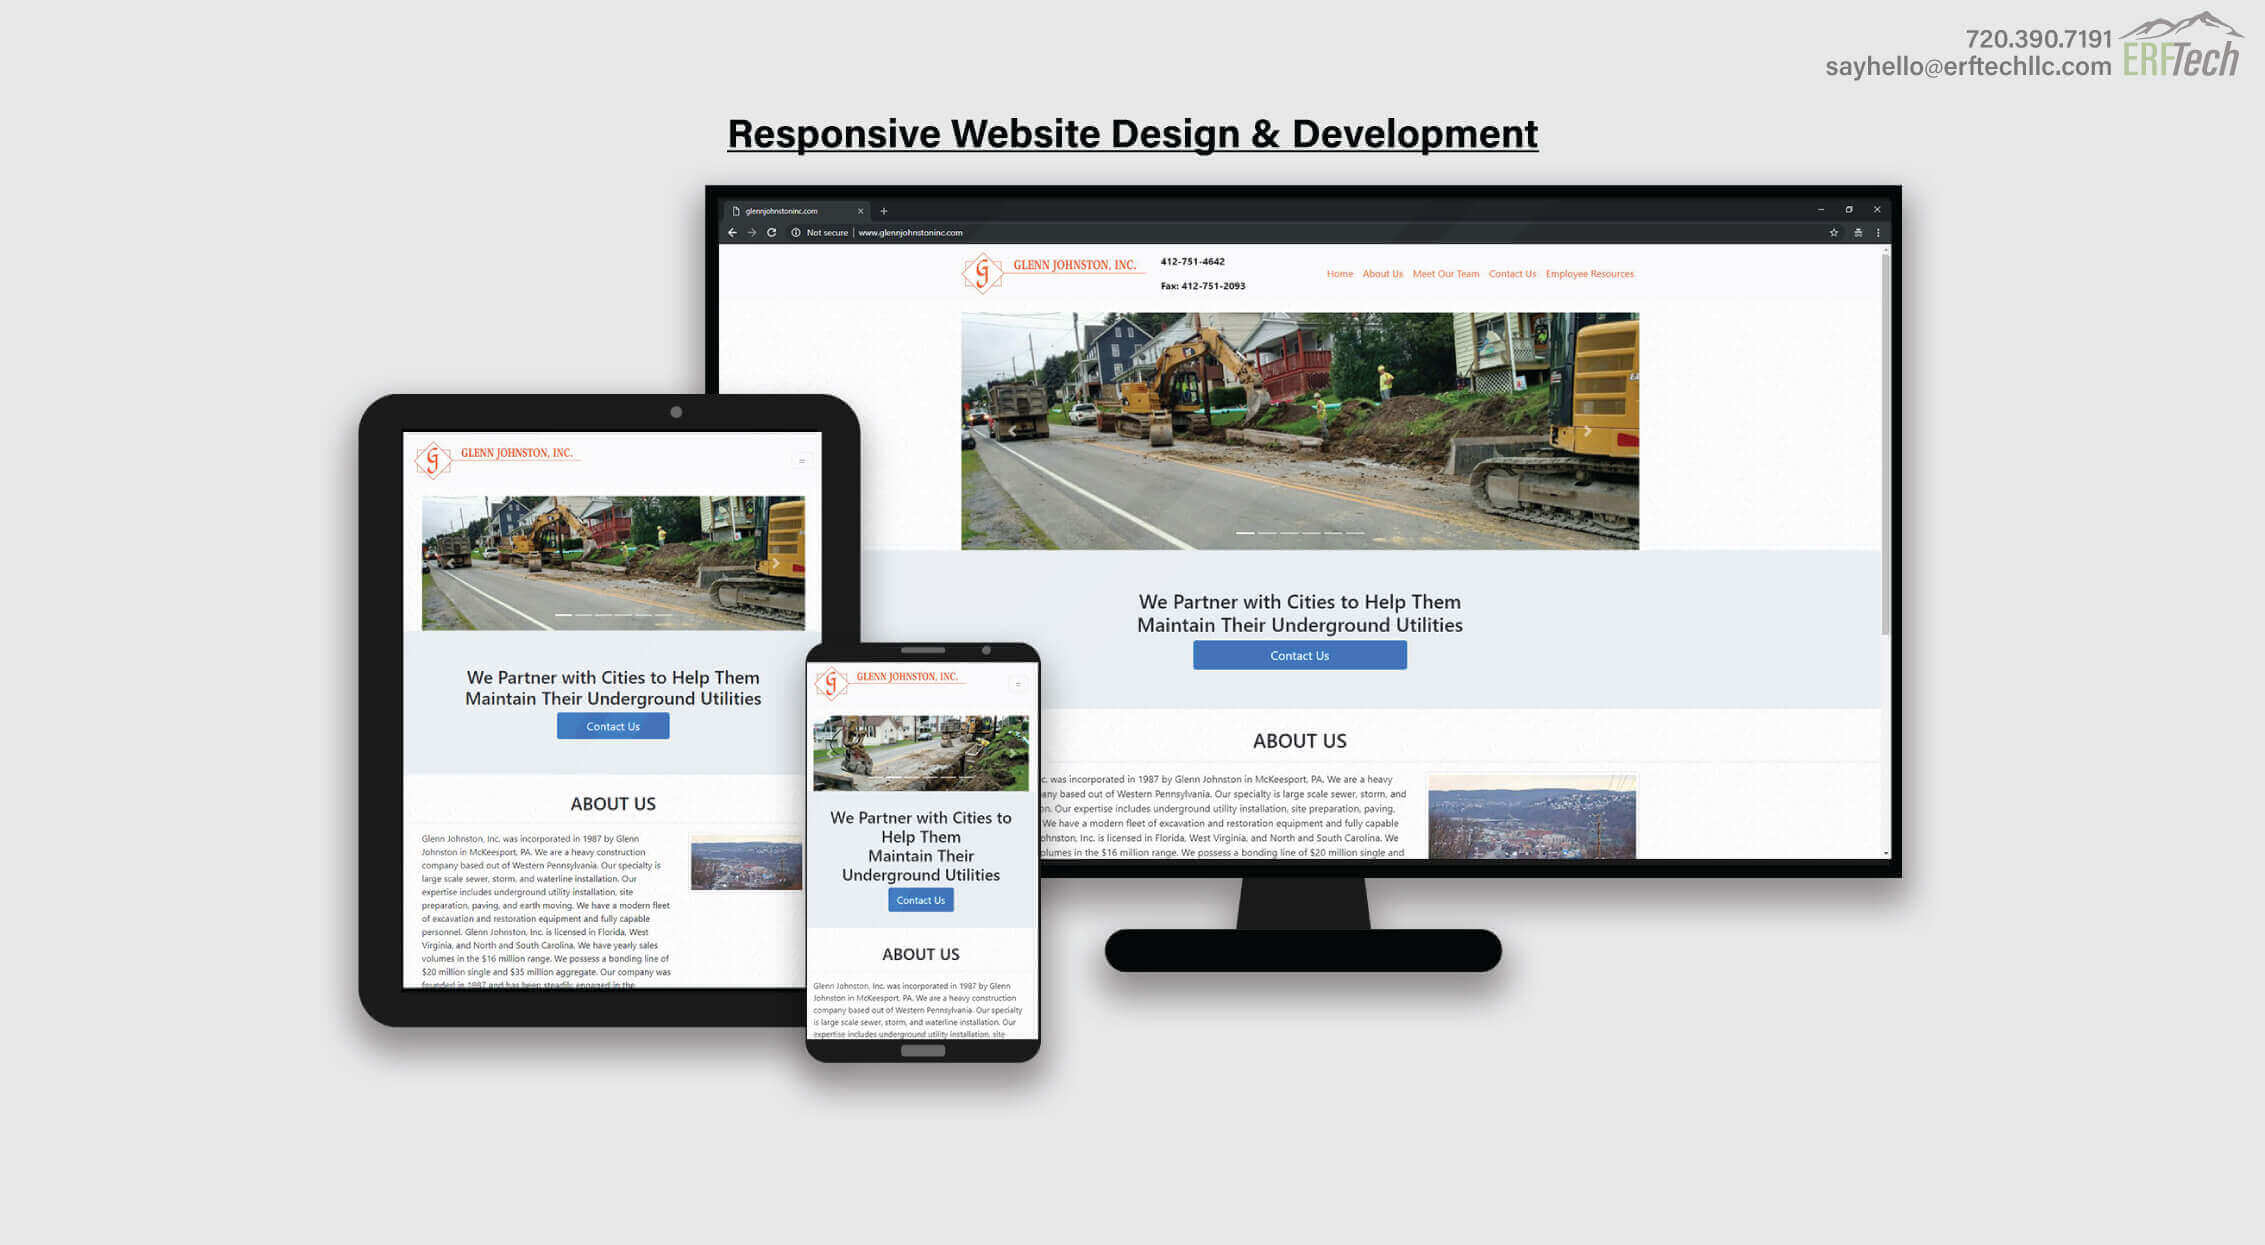 Website Management for Glenn Johnston in McKeesport, PA